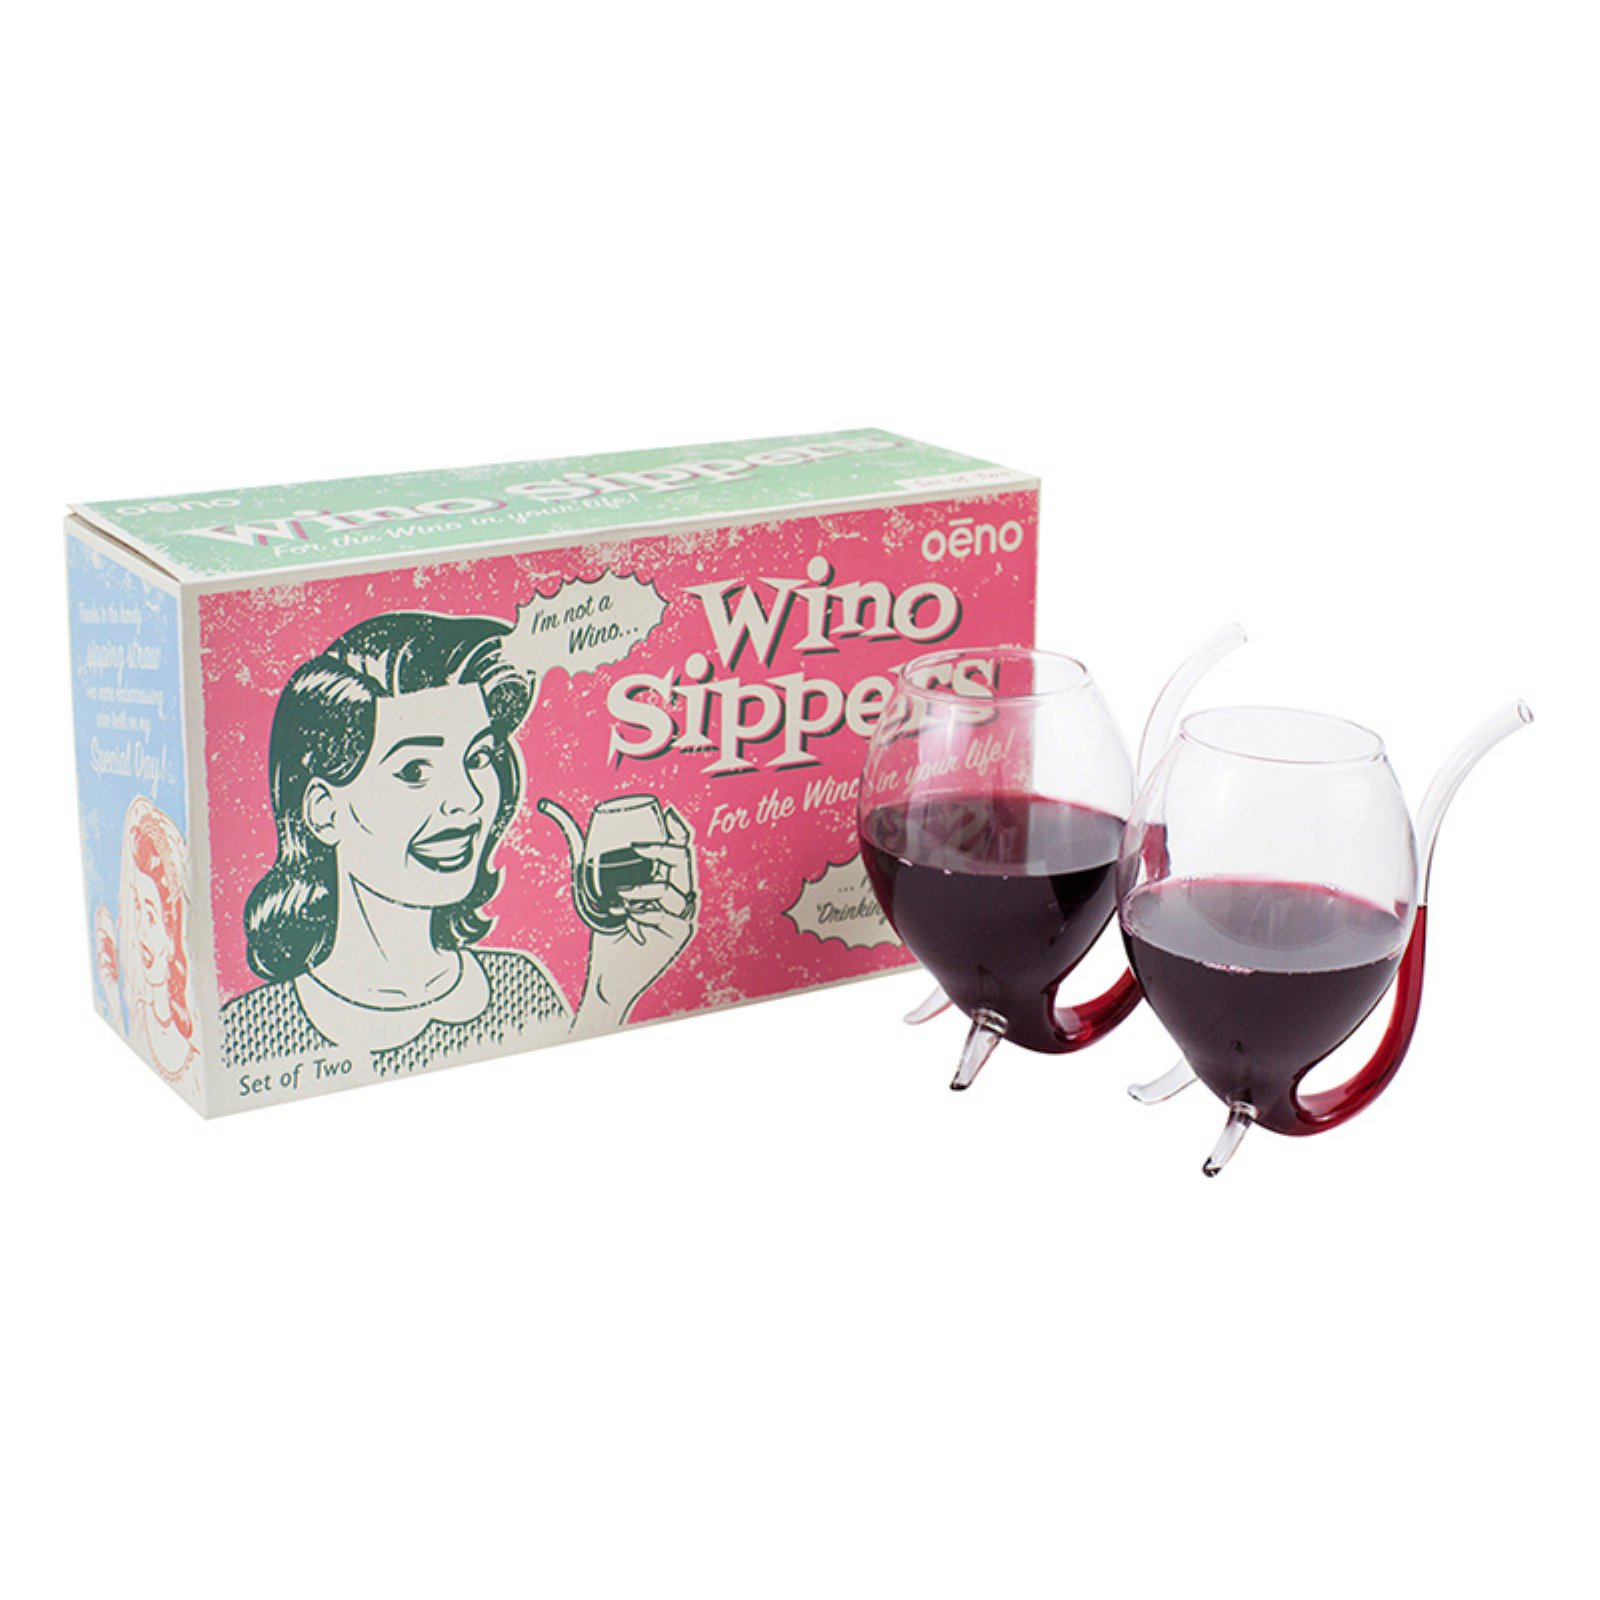 Oenophilia Wino Sipper - Set of 2